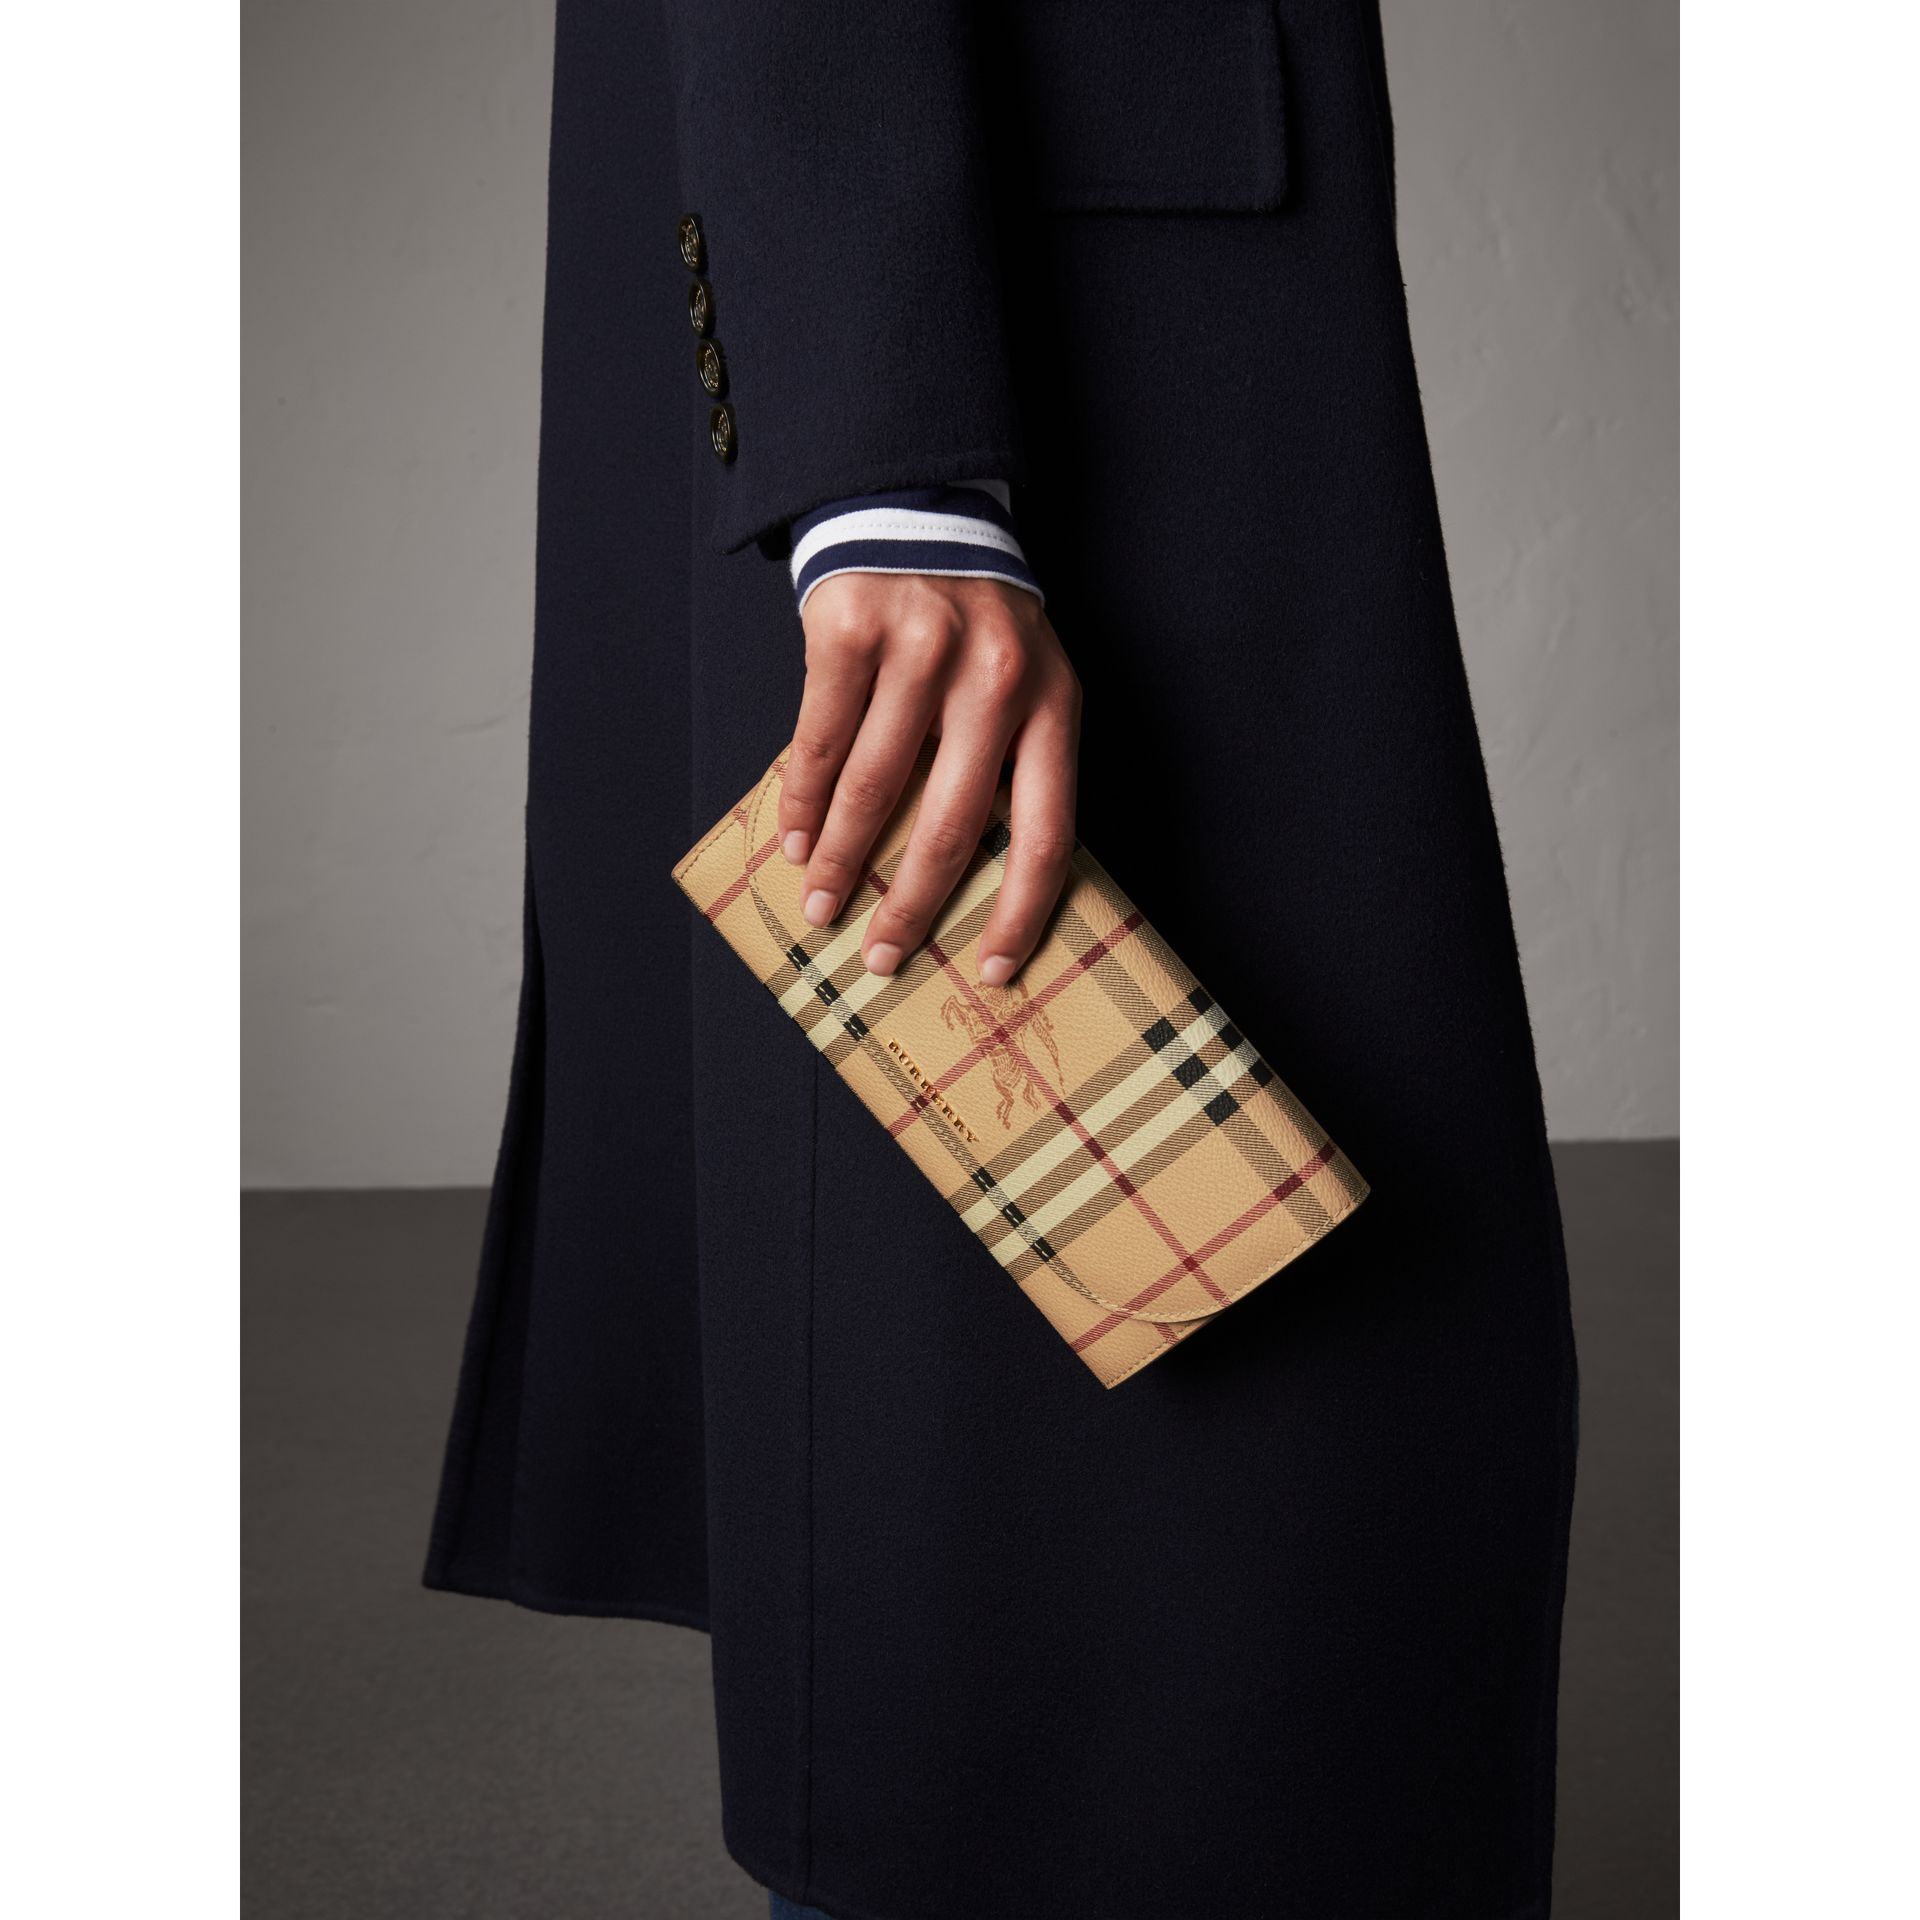 Leather Trim Haymarket Check Wallet with Chain in Mid Camel - Women | Burberry Australia - gallery image 3